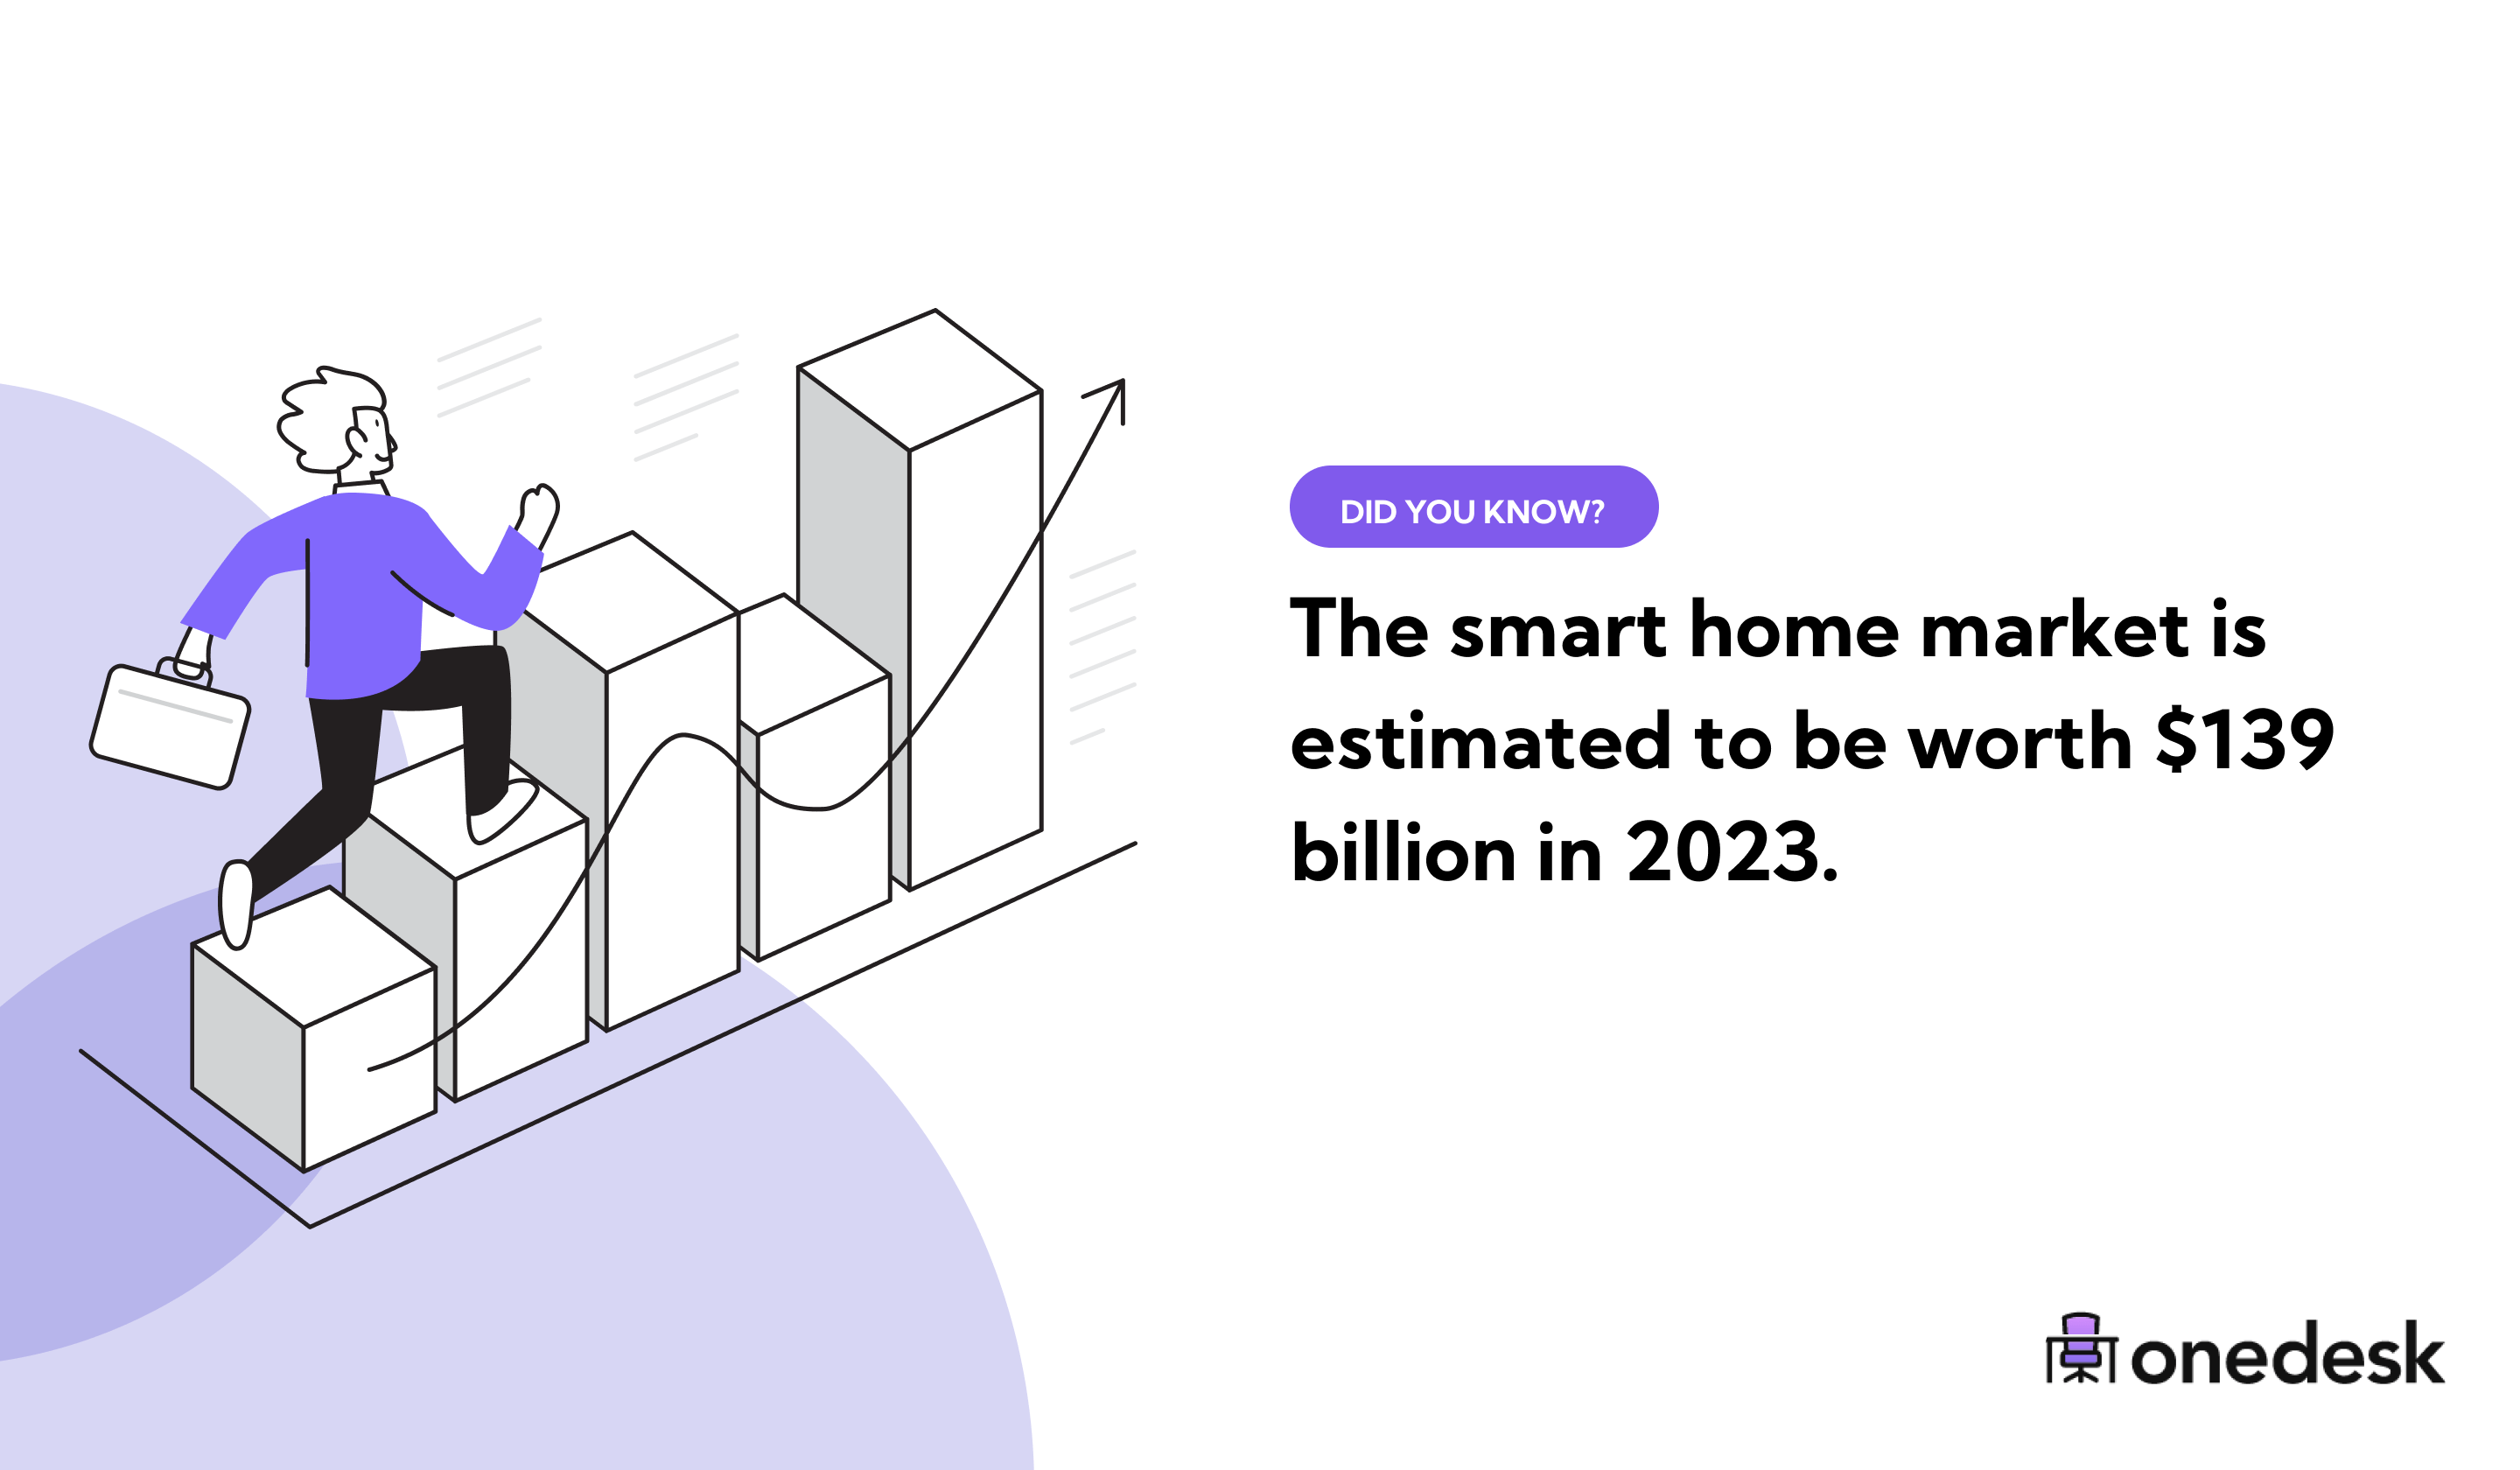 smart home market size in 2023